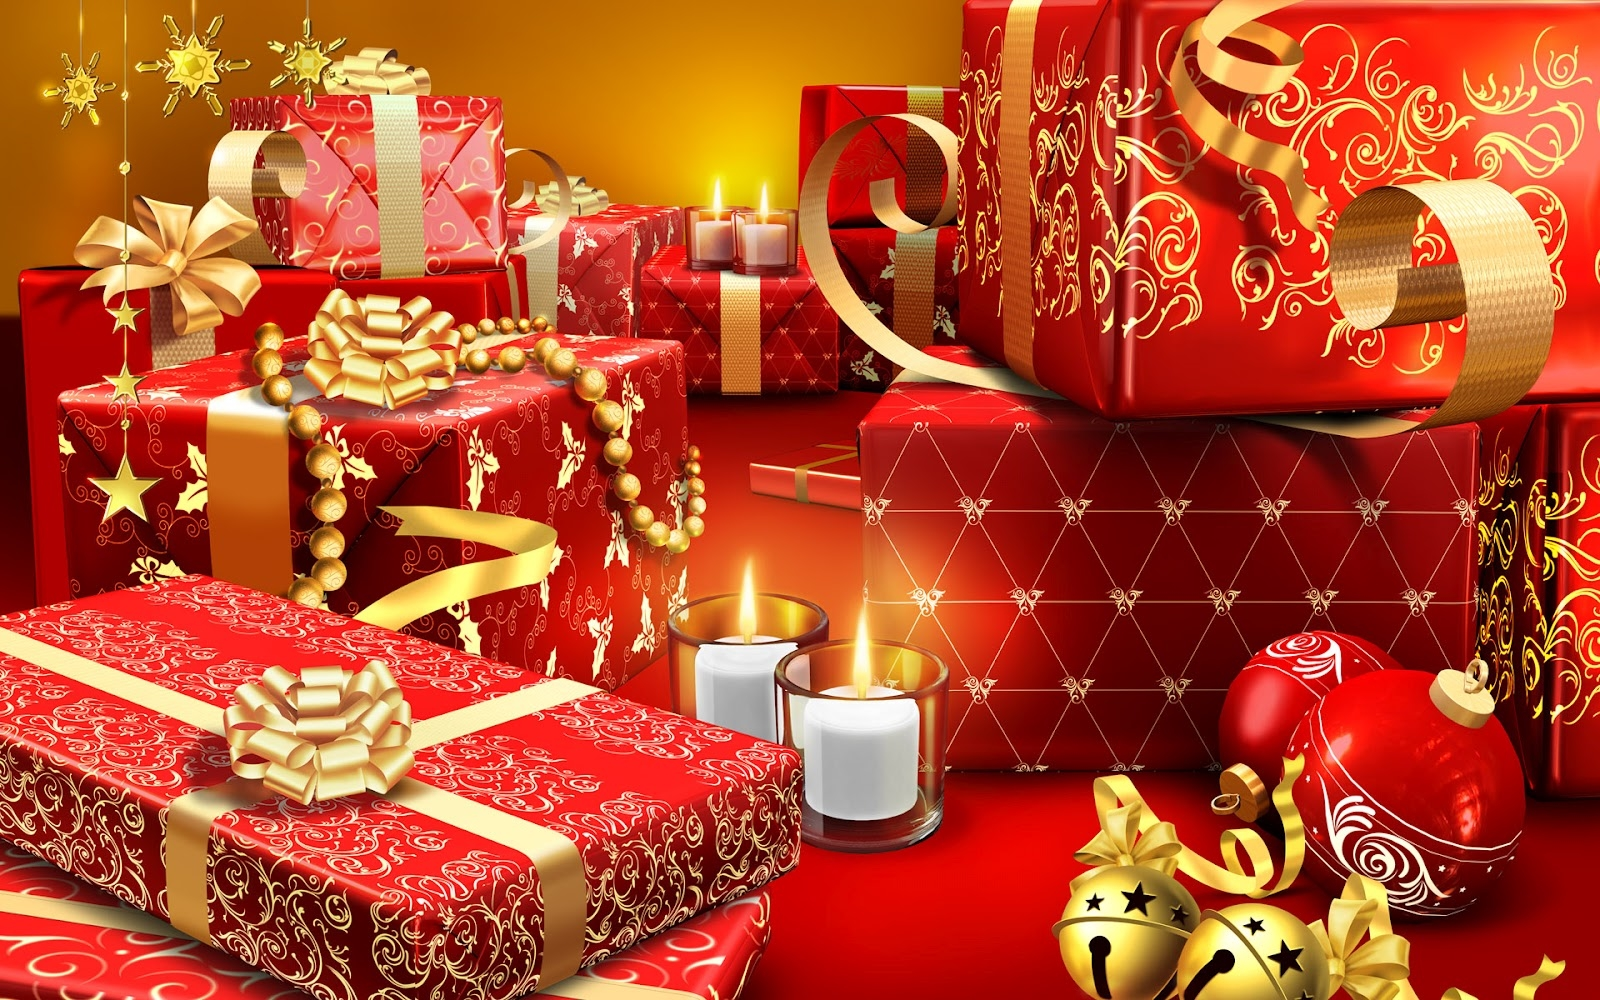 Happy New Year 2013 Wallpapers 3D Wallpaper Nature Wallpaper 1600x1000